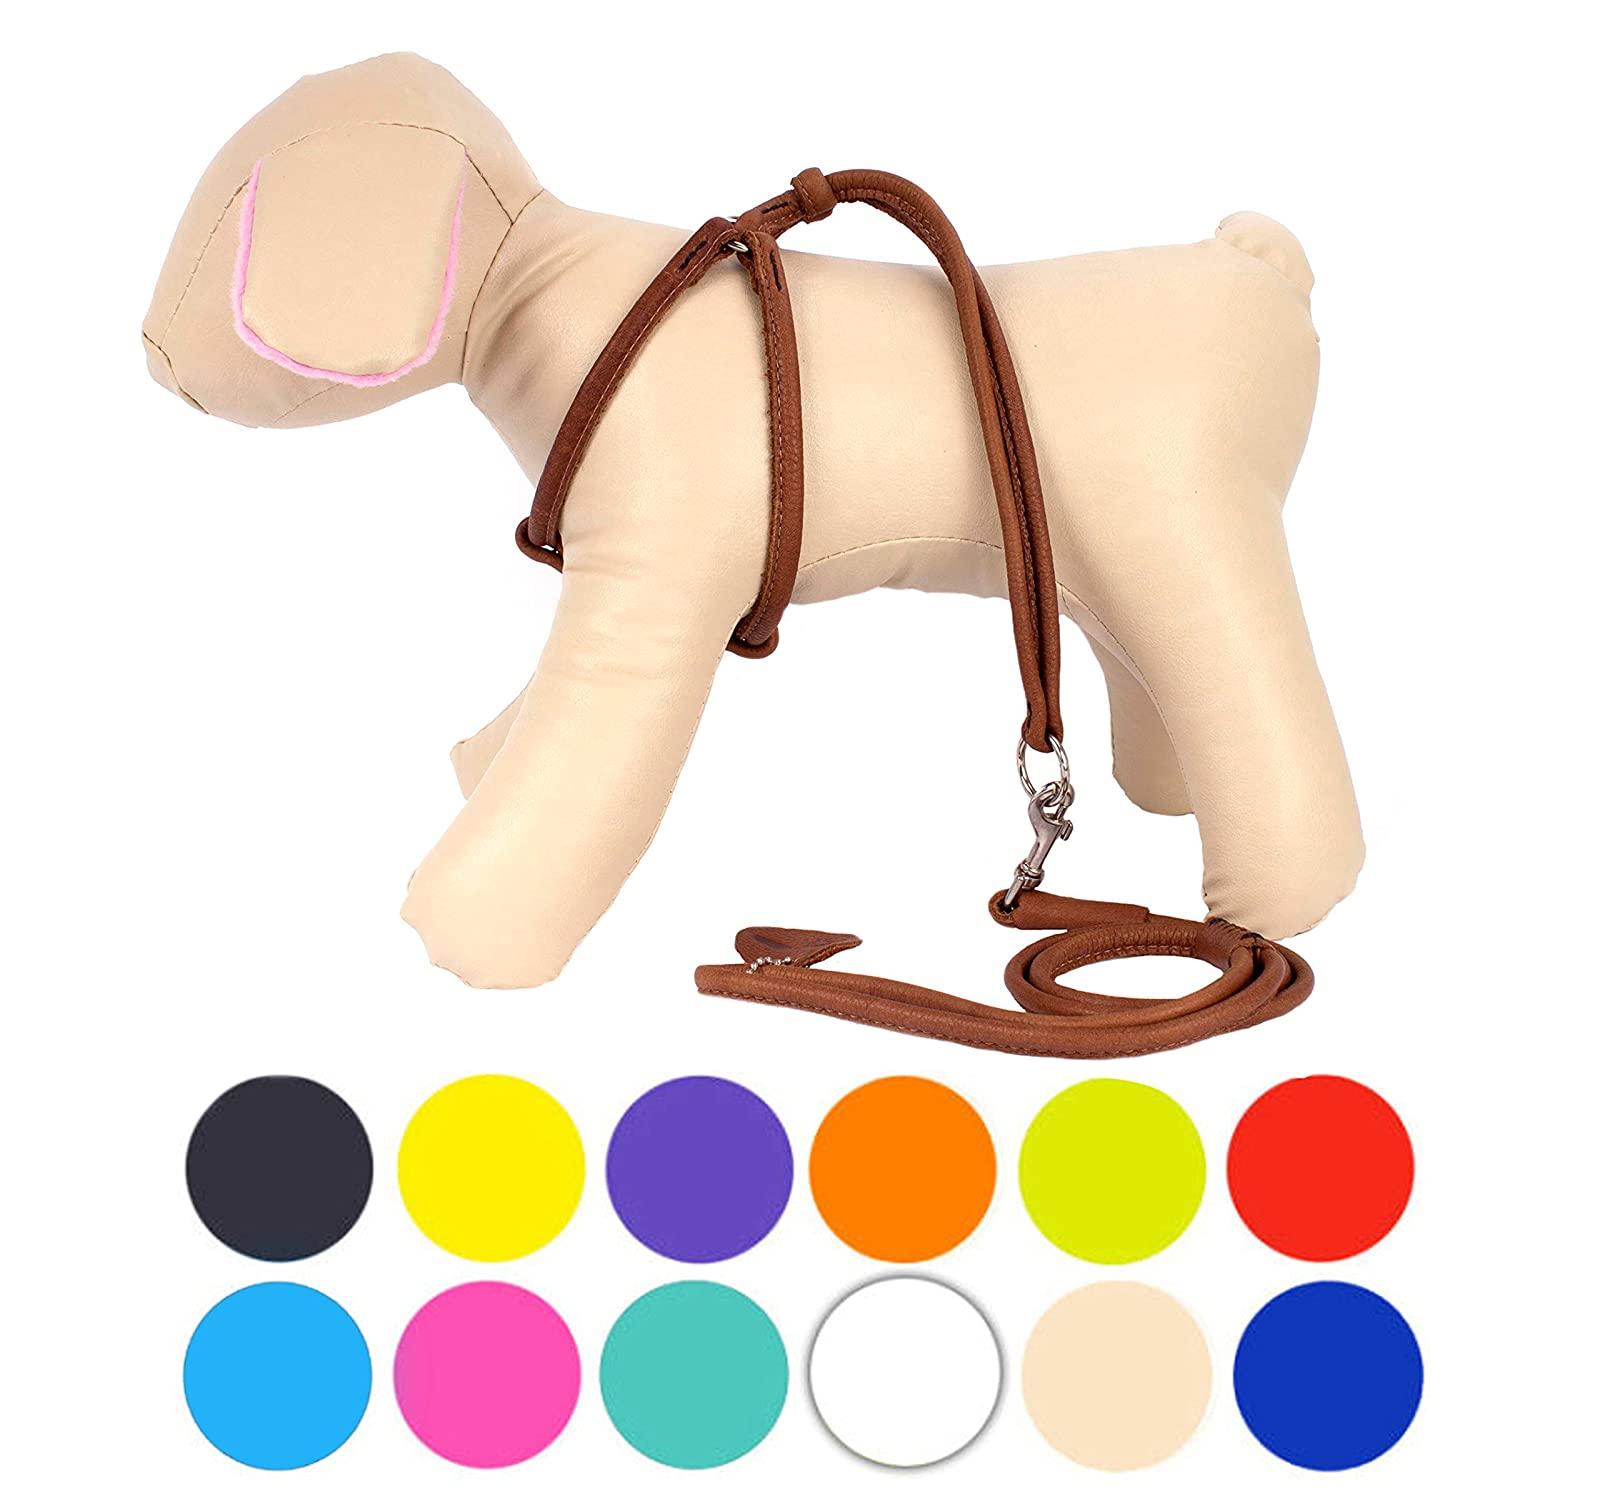 CollarDirect Rolled Leather Dog Harness Small Puppy - 10